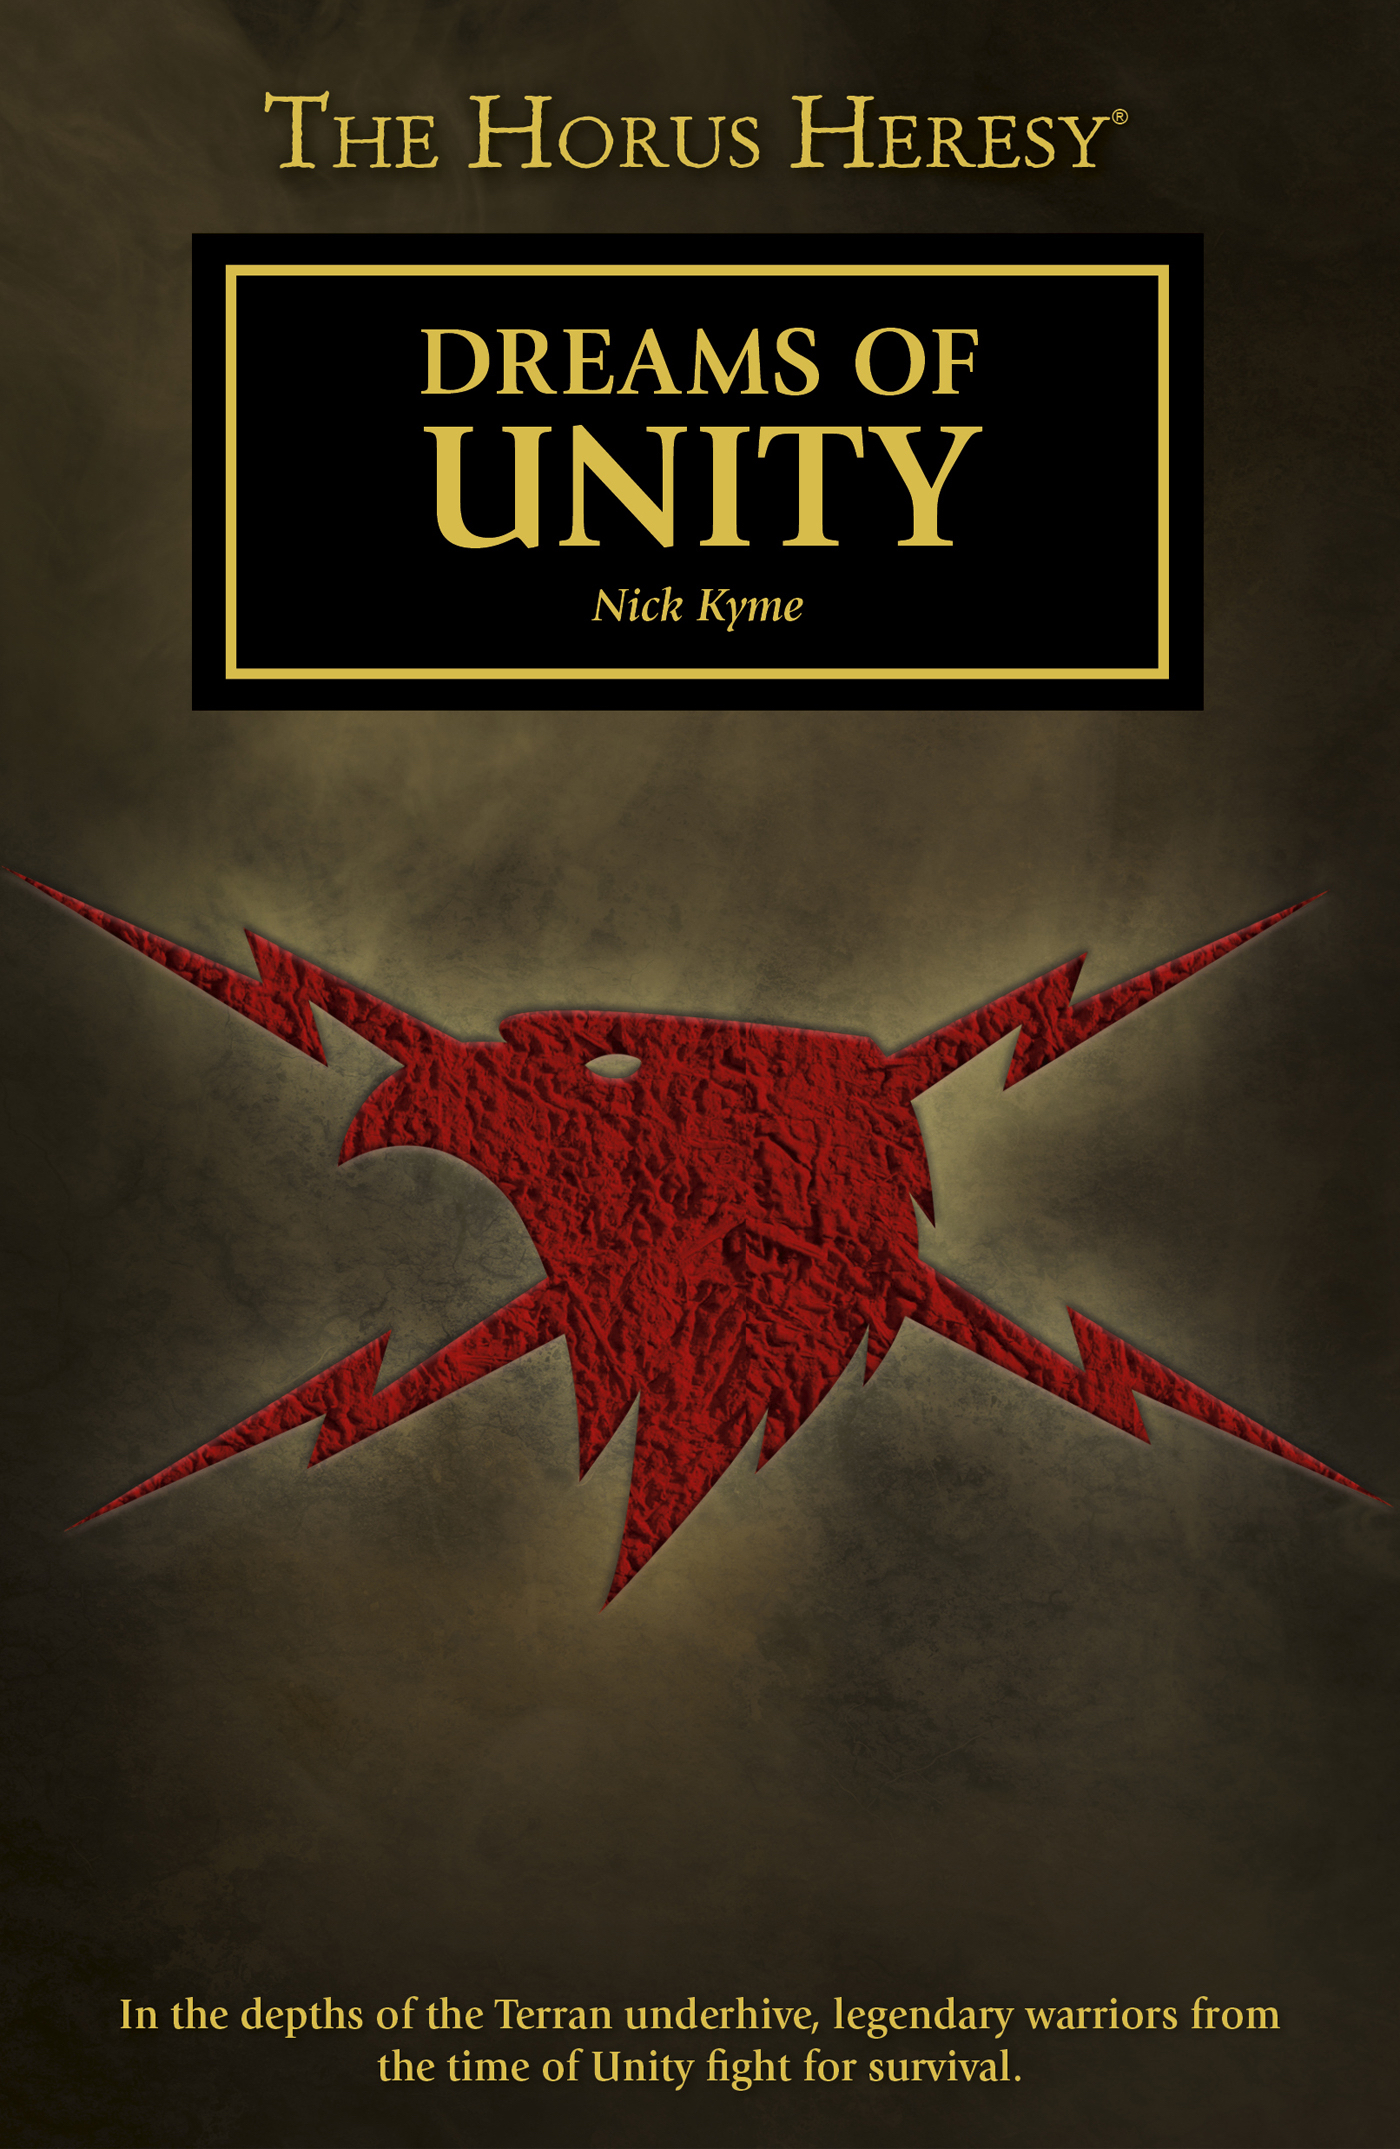 Dreams of Unity by Nick Kyme